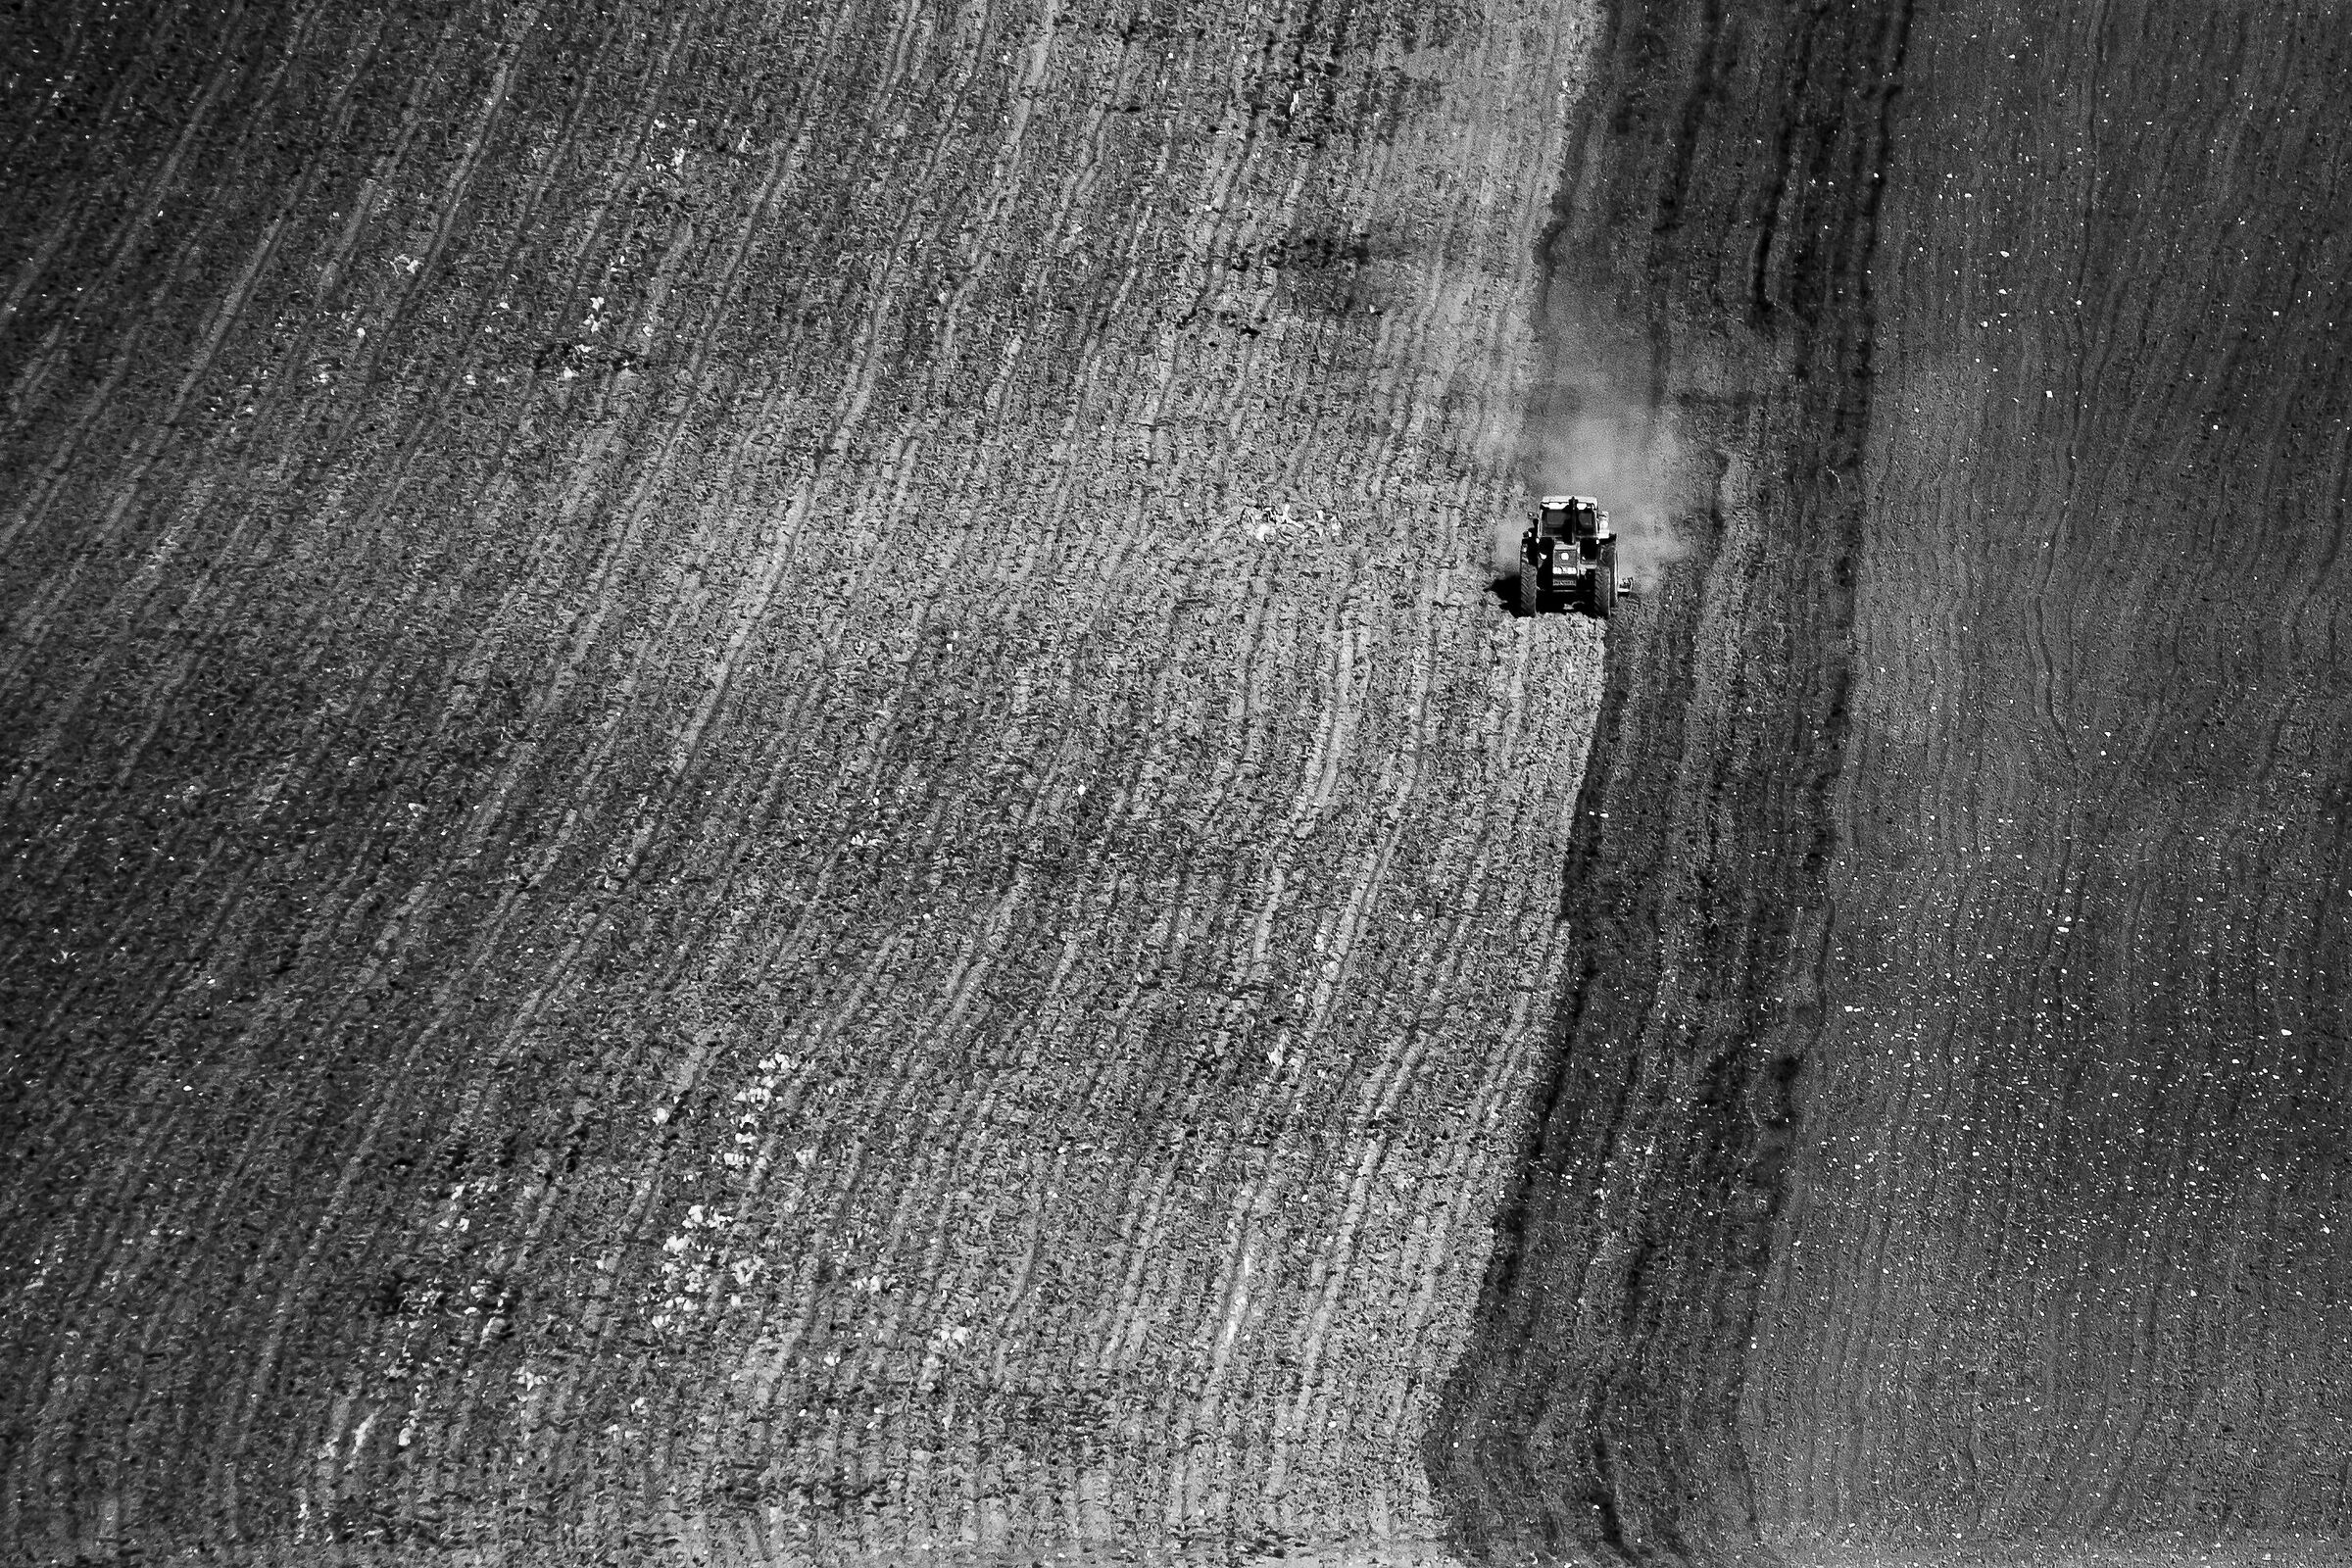 The loneliness of the tractor...